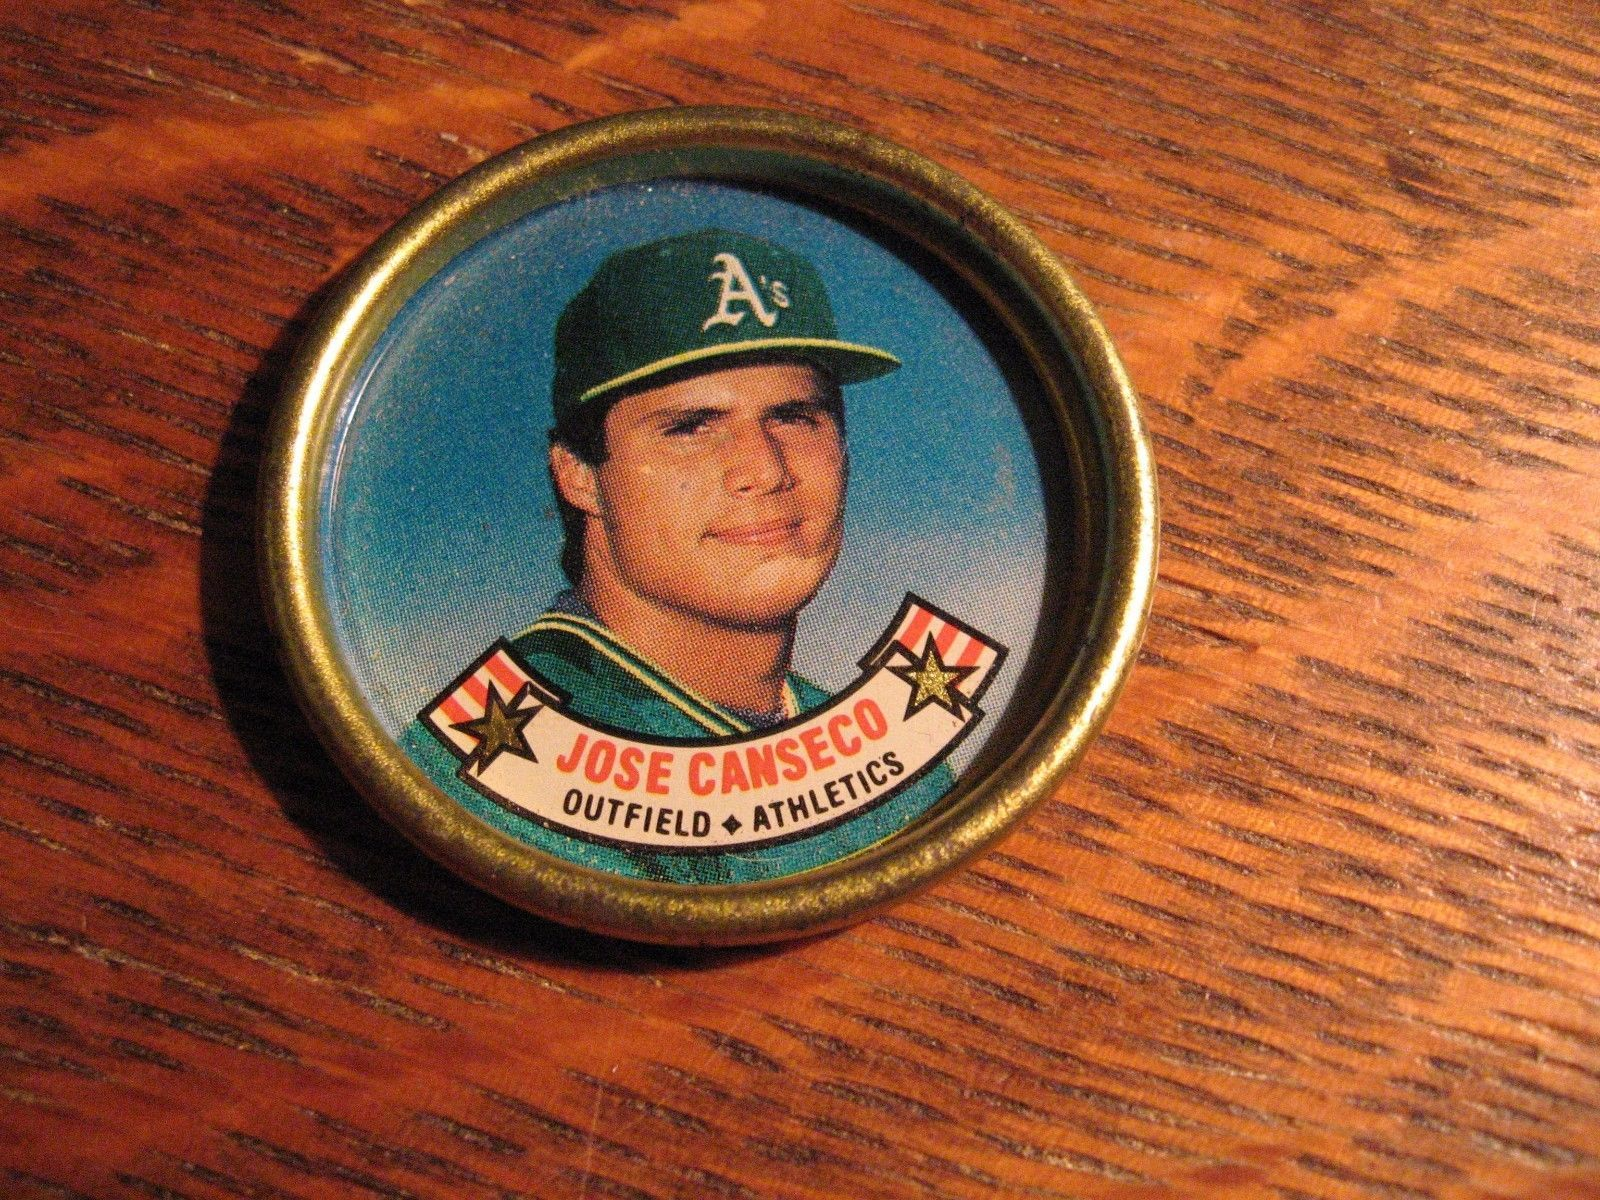 Jose Canseco Coin Insert Vintage 1988 And 15 Similar Items